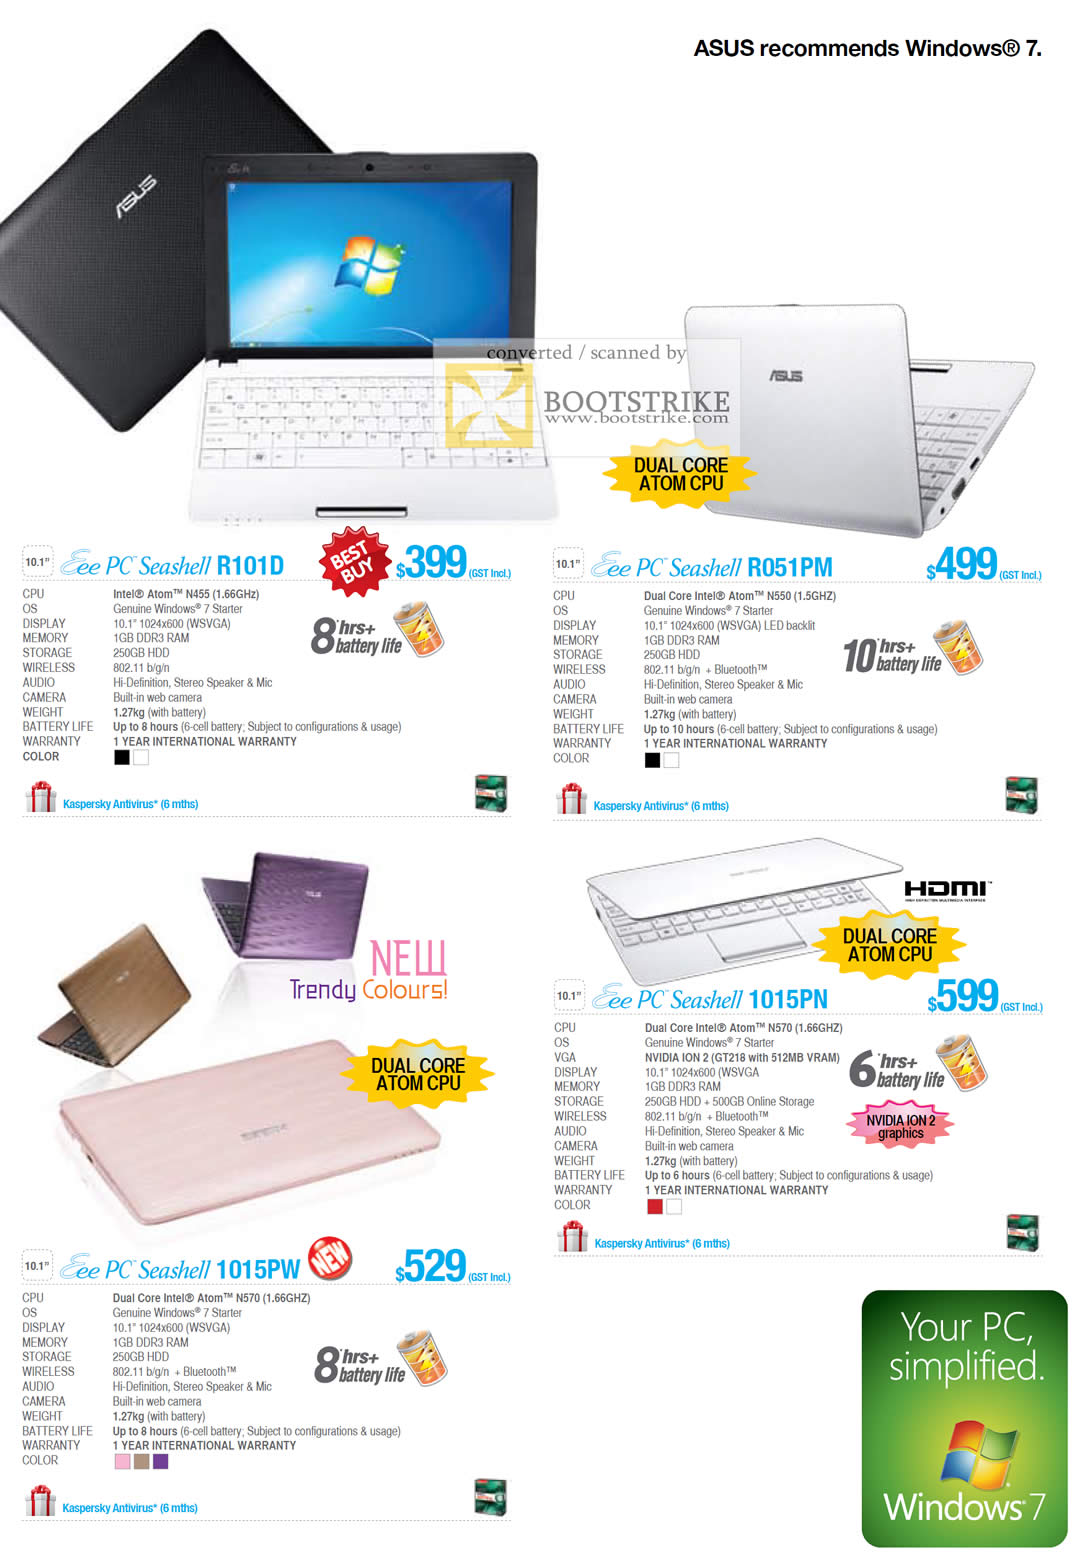 IT Show 2011 price list image brochure of ASUS Notebooks Netbooks Eee PC Seashell R101D R051PM 1015PW 1015PN